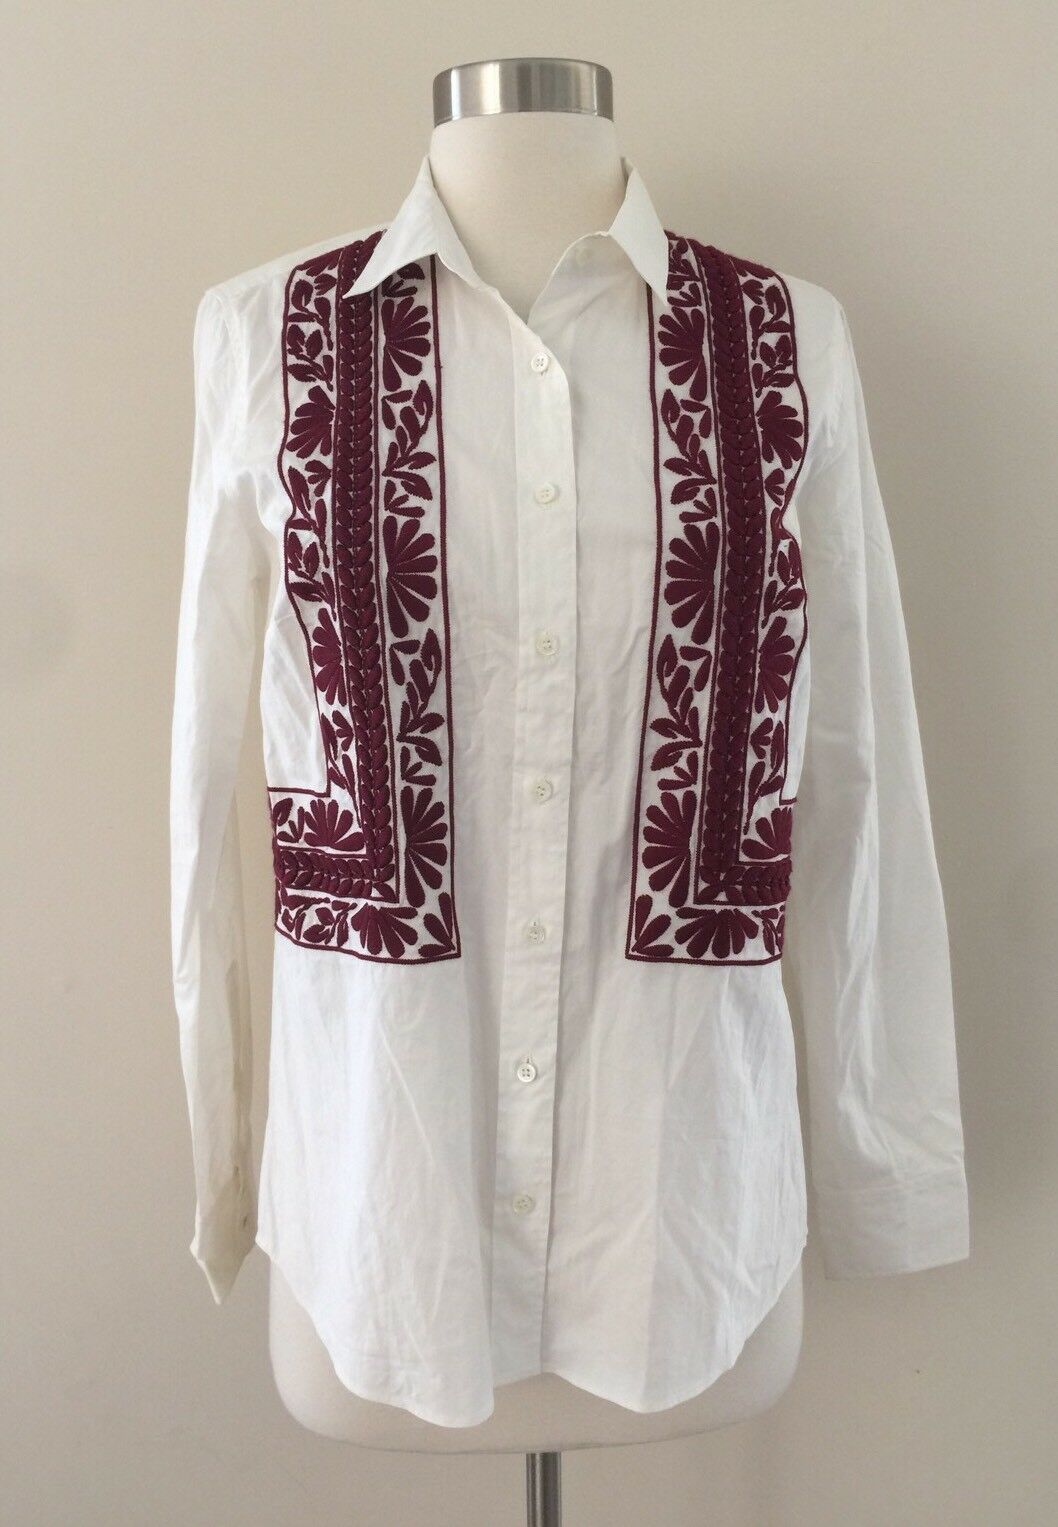 Jcrew Collection Leaf Embroiderot Dress Shirt Button Down Top Weiß Maroon 2 New